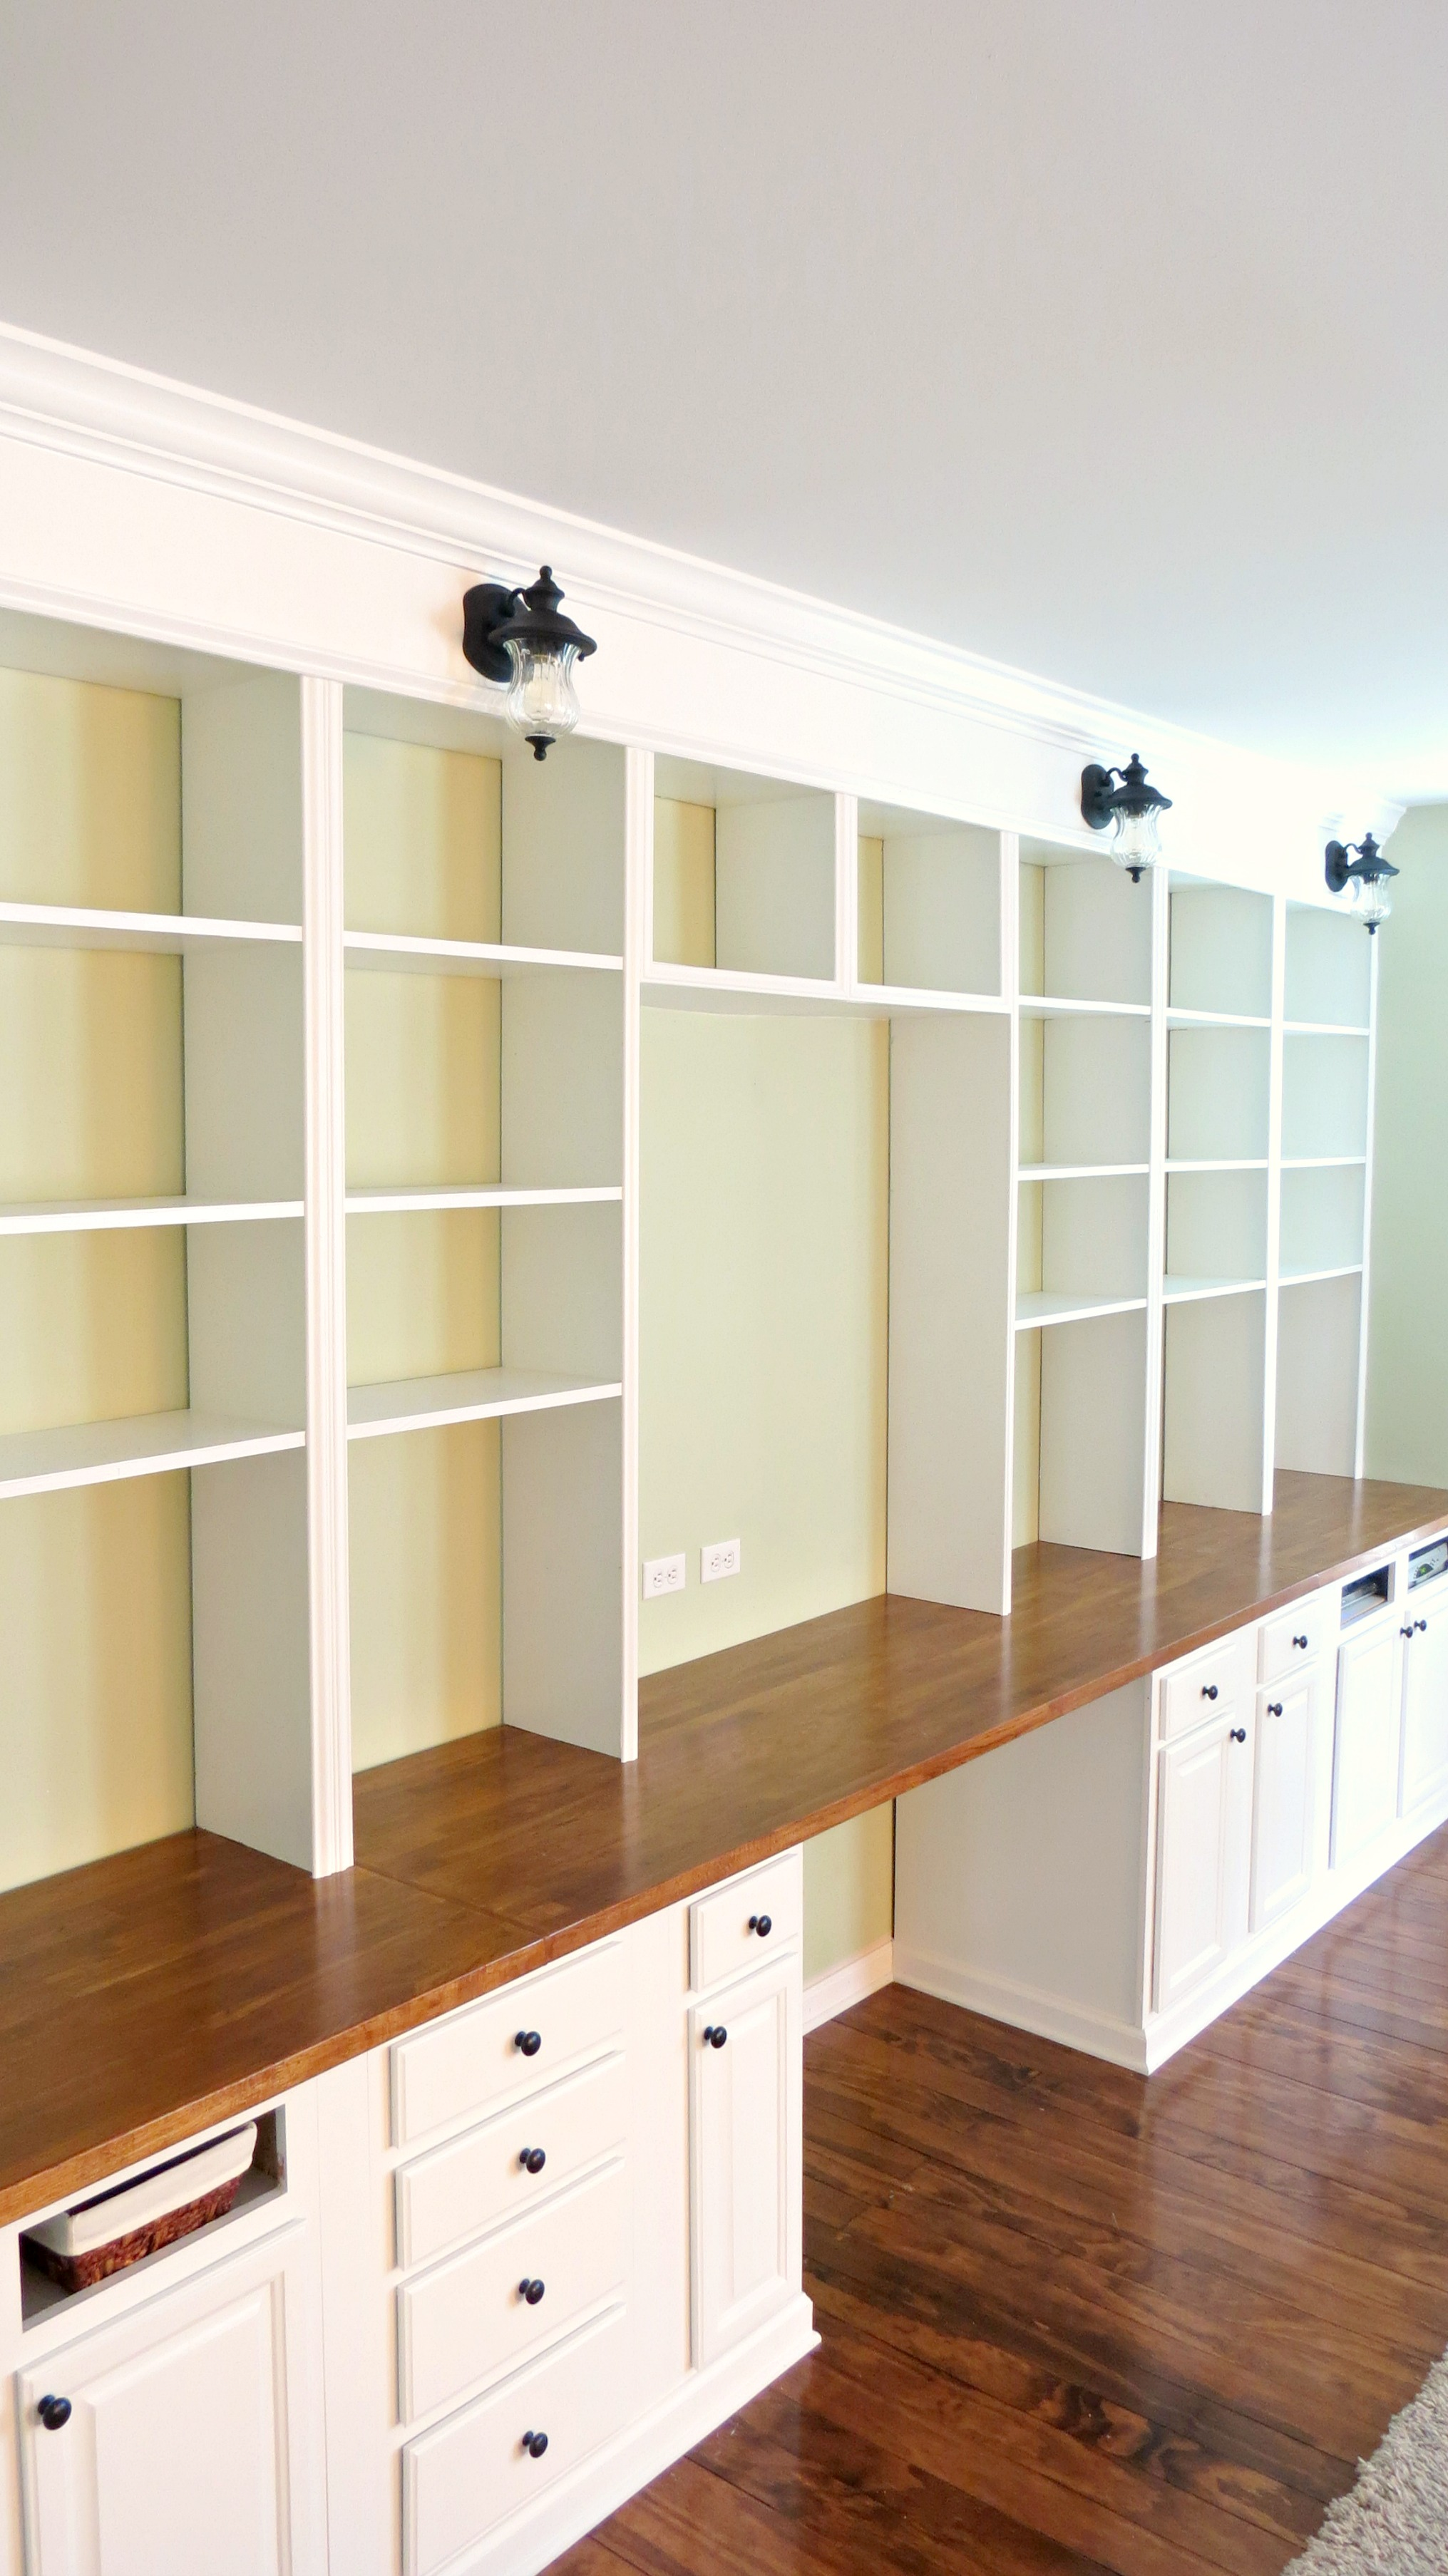 office shelving units. Home Office Shelving Units. Build A Wall-to-wall Built-in Desk Units